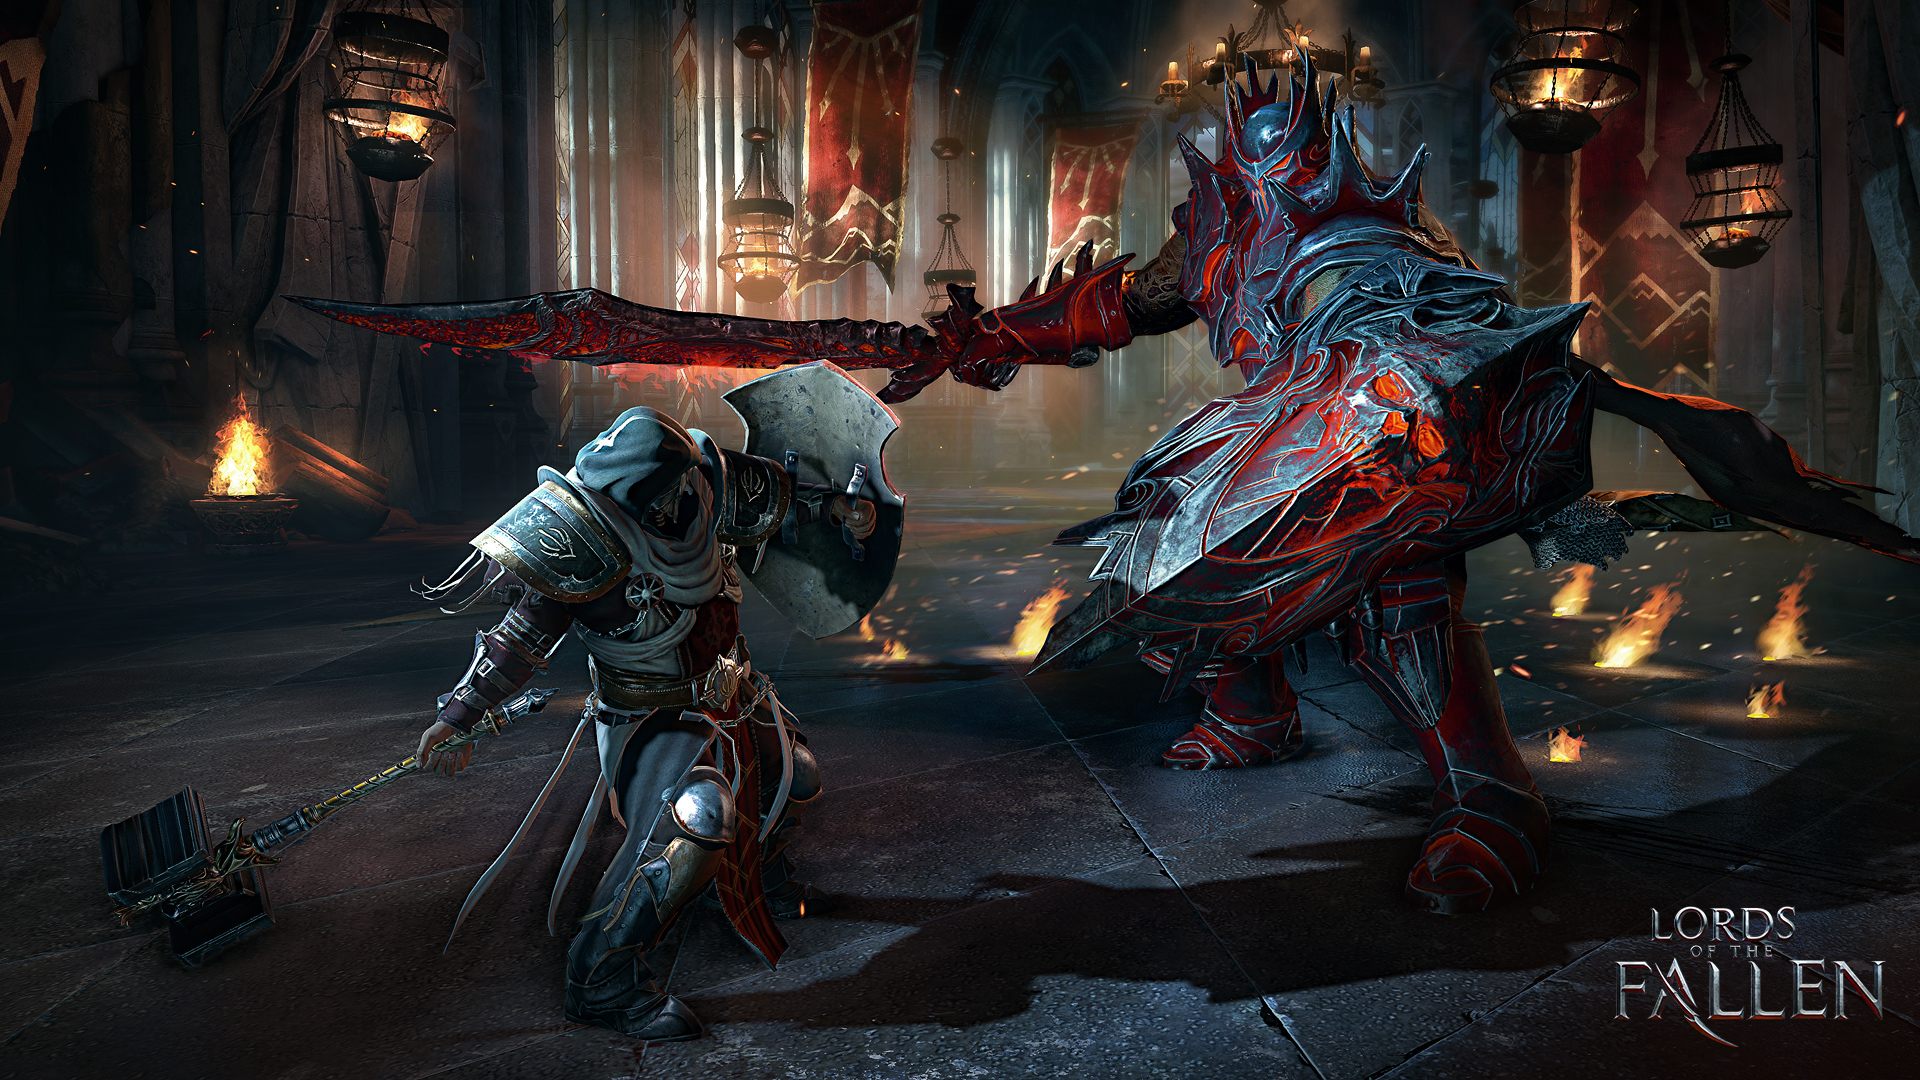 Lords of the Fallen 2014 (اربابان سقوط کرده)